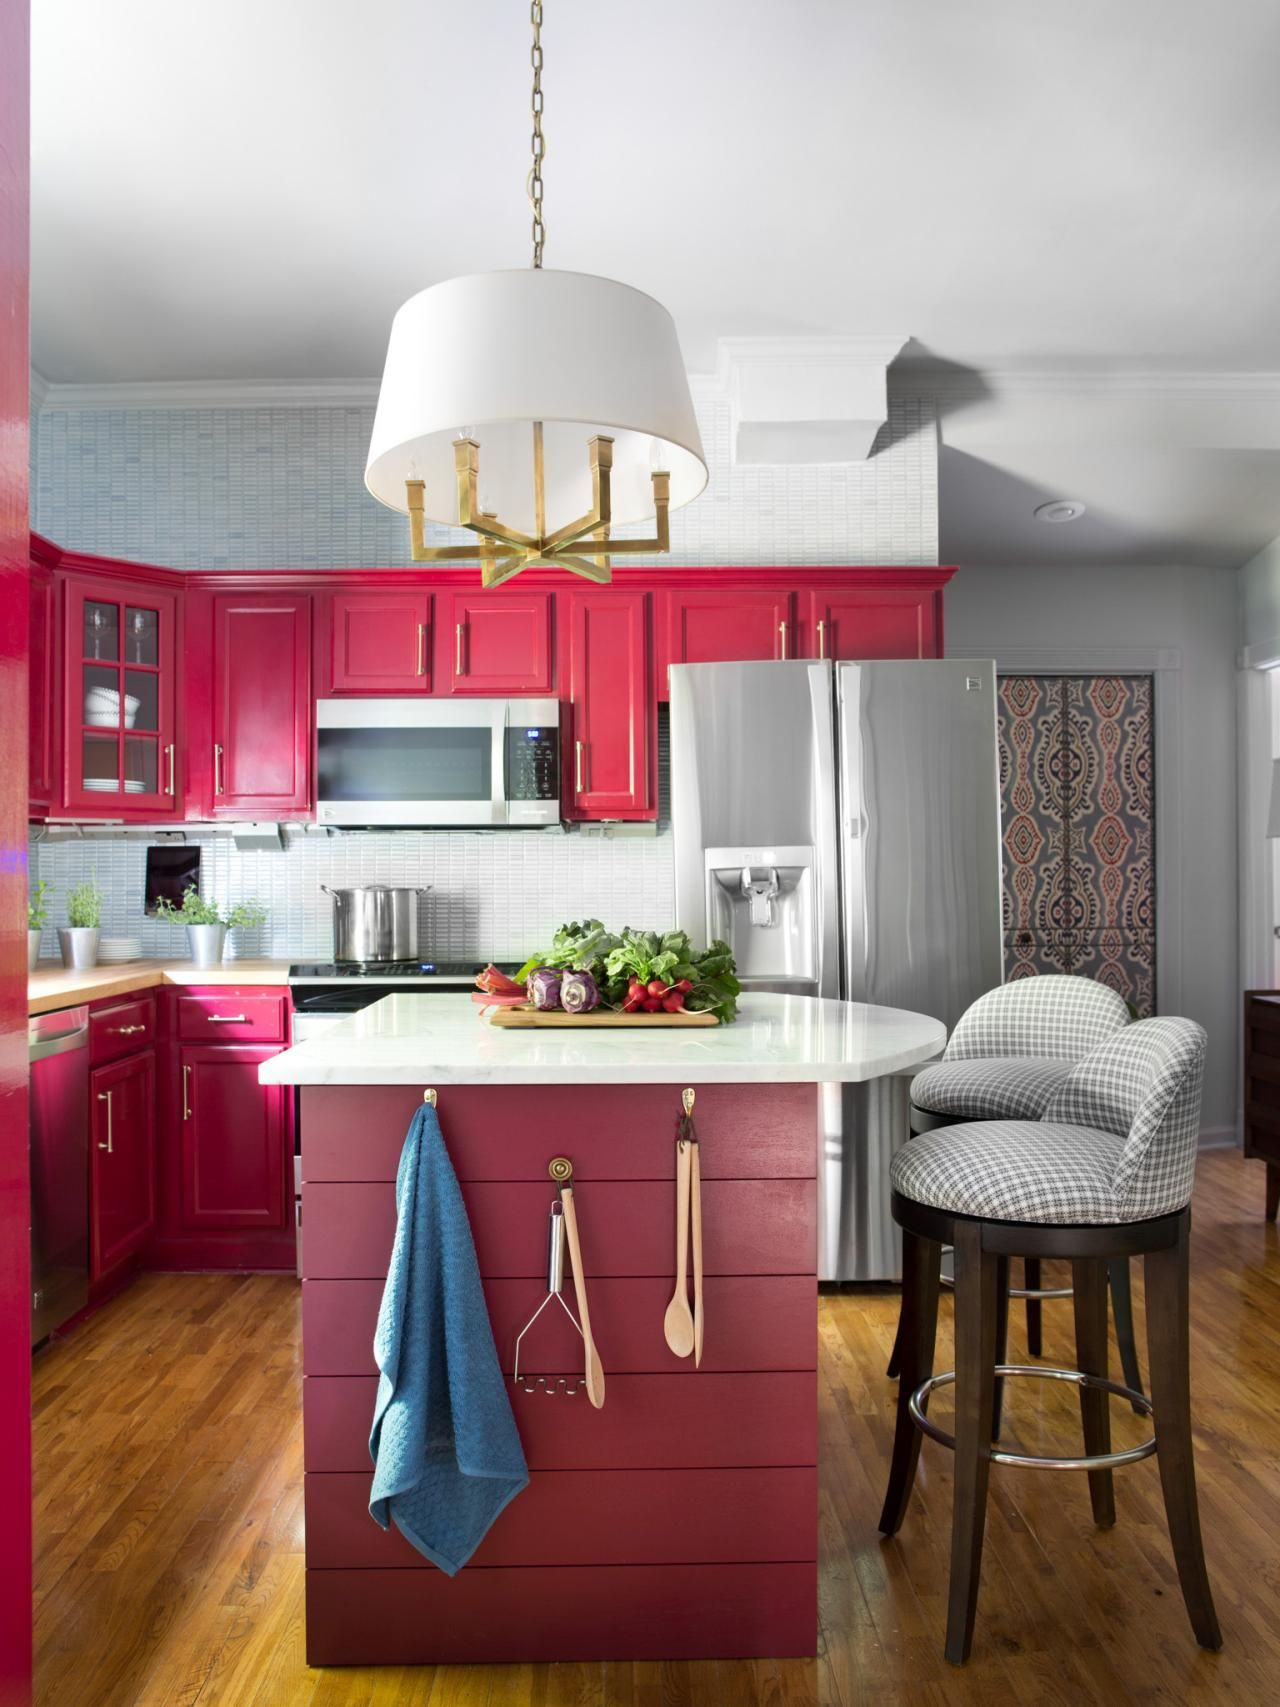 small kitchen makeover pinterest hgtv kitchens and wall tiles